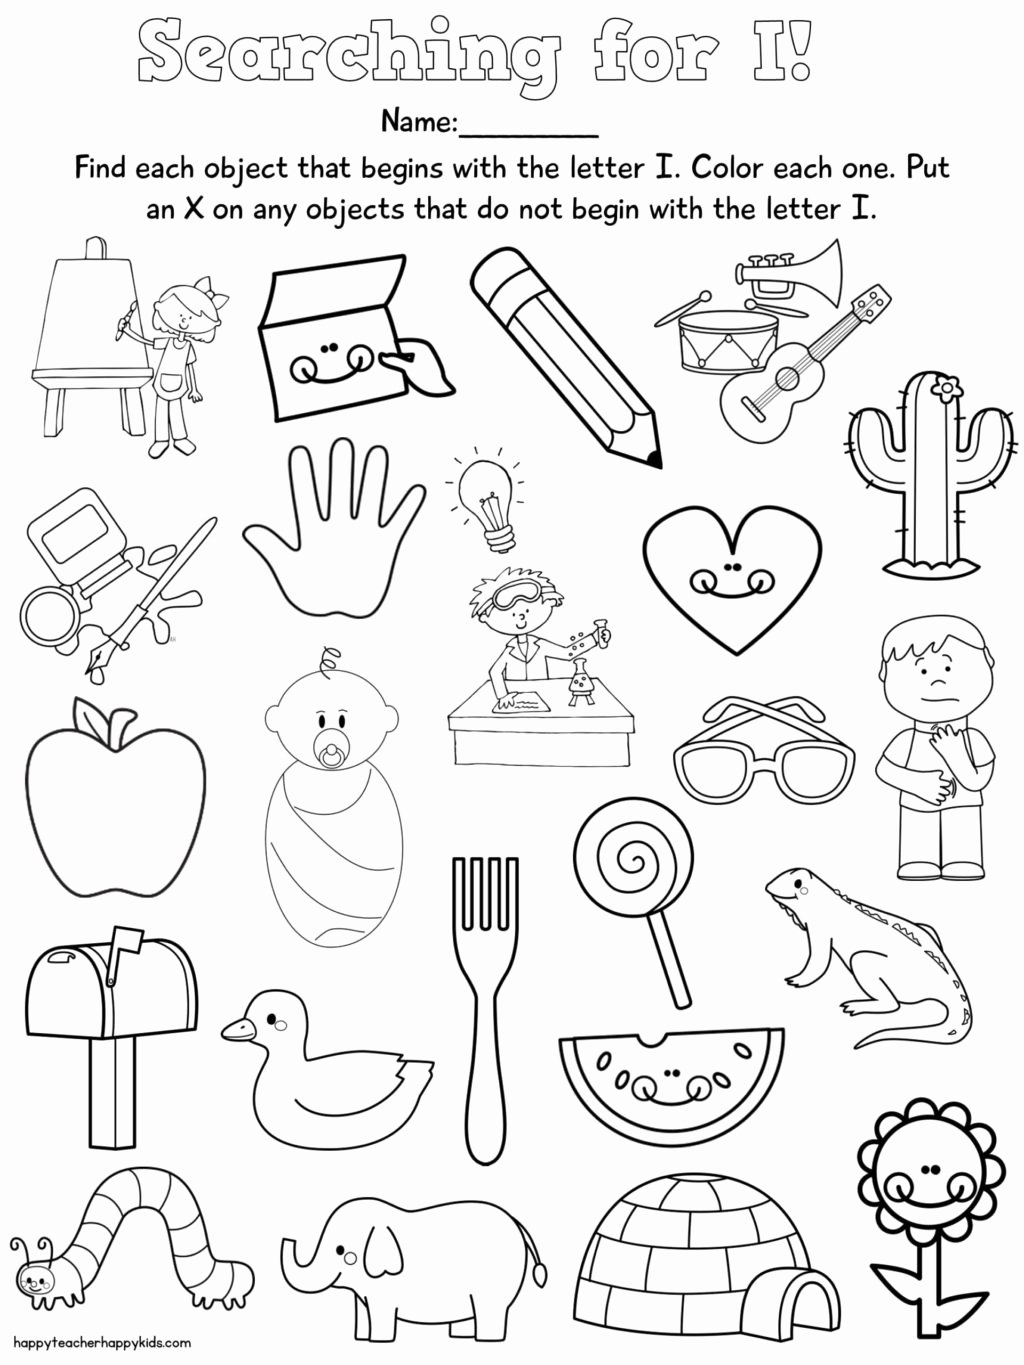 Fun Worksheets for Preschoolers Ideas Worksheet Letter Worksheets Kindergarten songs Math Tutor